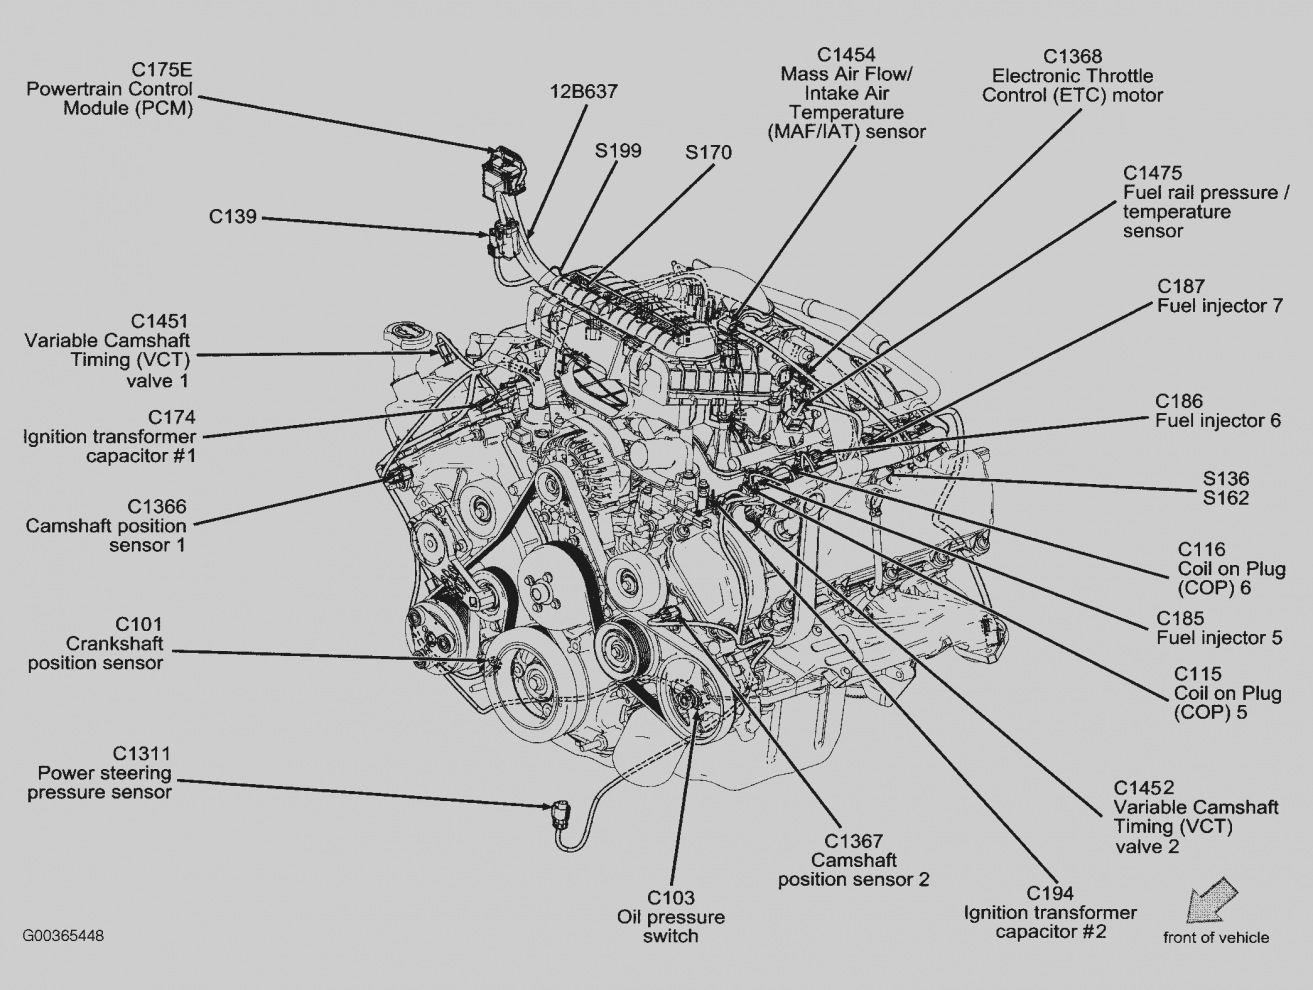 2001 Ford F150 Exhaust System Diagram Schematics 2003 F 150 Egr Sensor Wiring Image Result For 4 6l Cars Mercury Grand Marquis